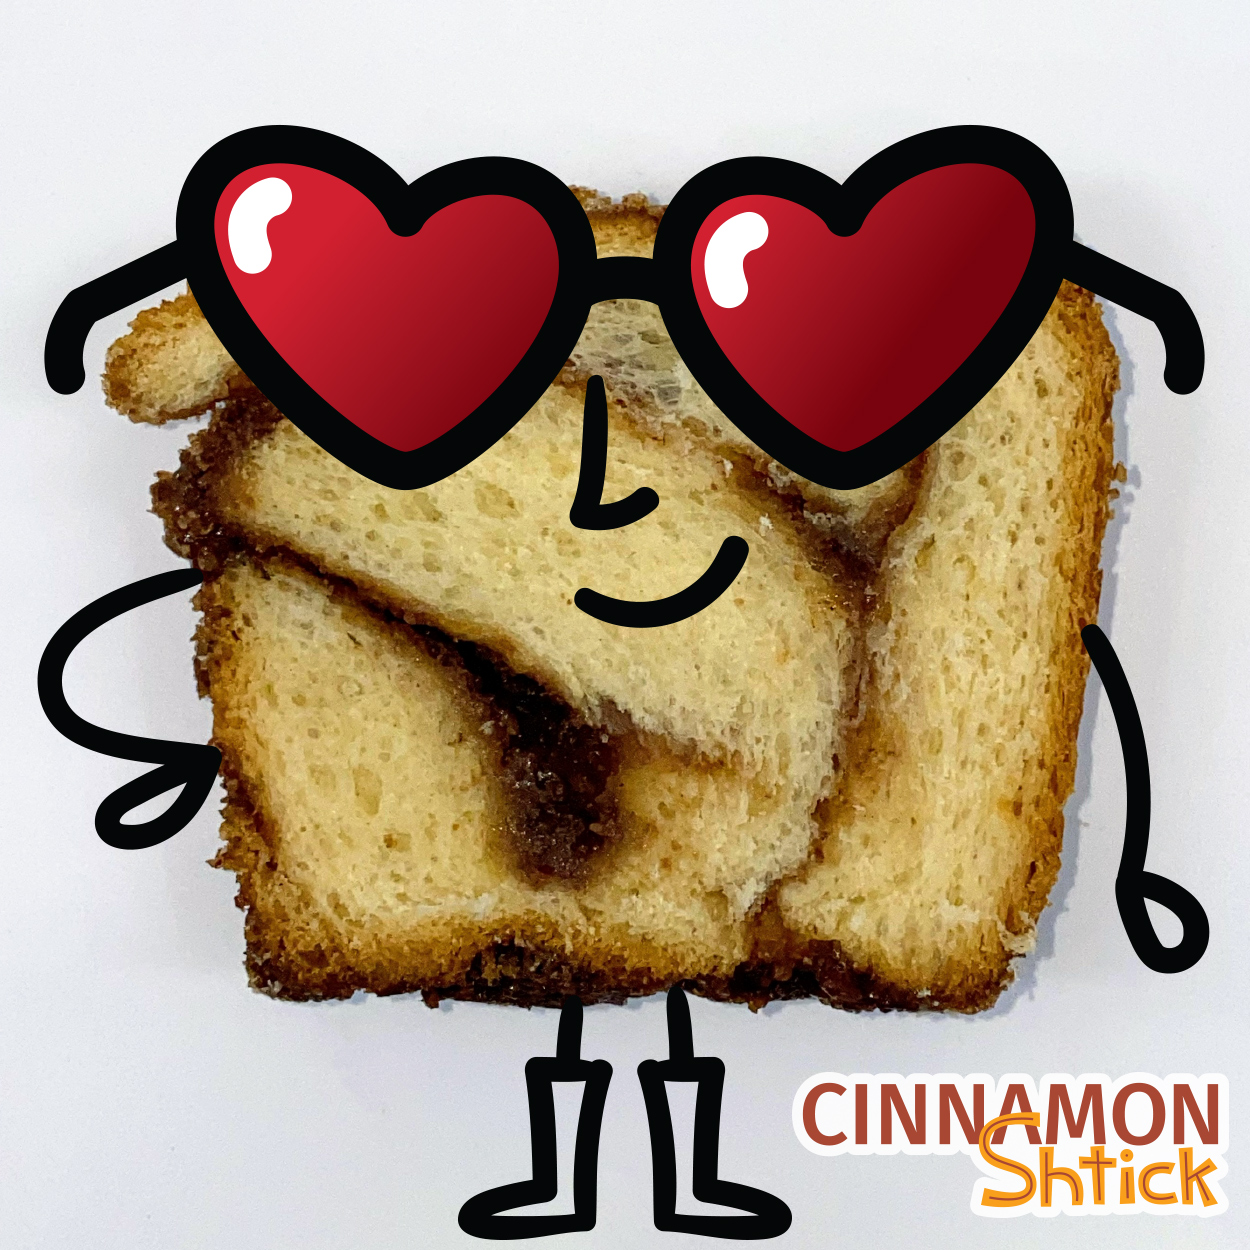 slice of babka turned into a character with heart sunglasses on